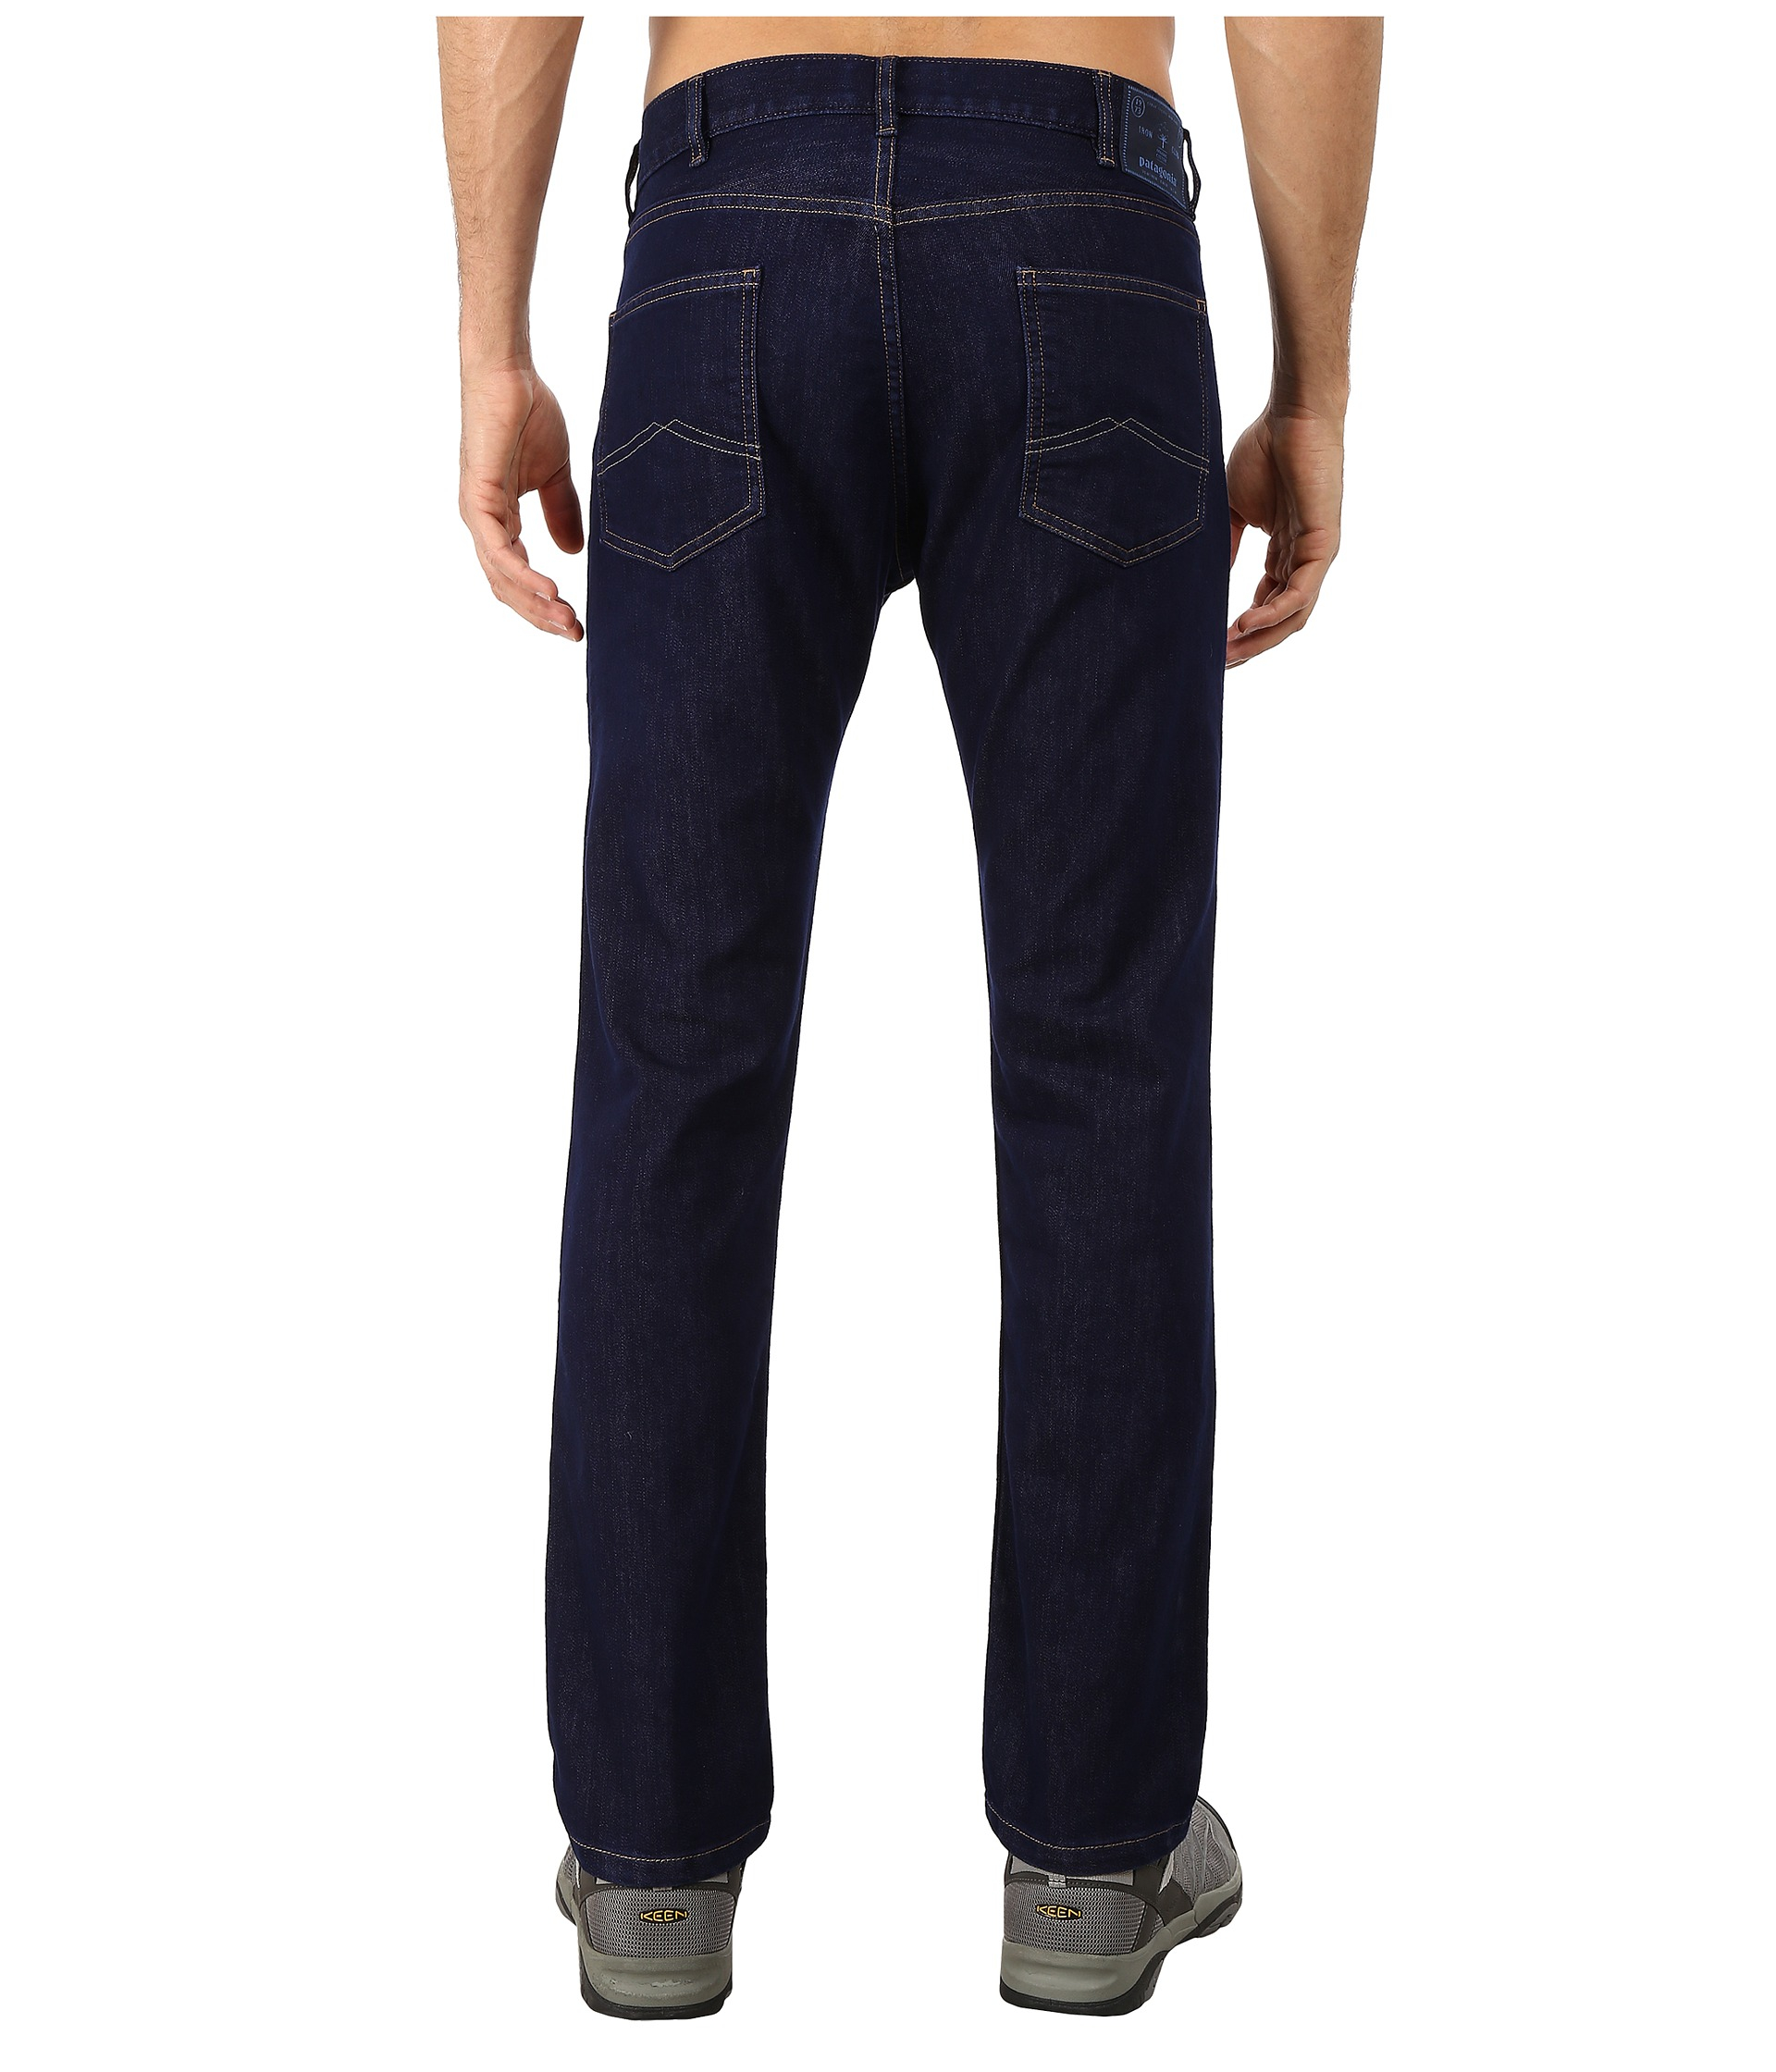 71bbc3816e61 Patagonia Performance Straight Fit Jeans - Short in Blue for Men - Lyst